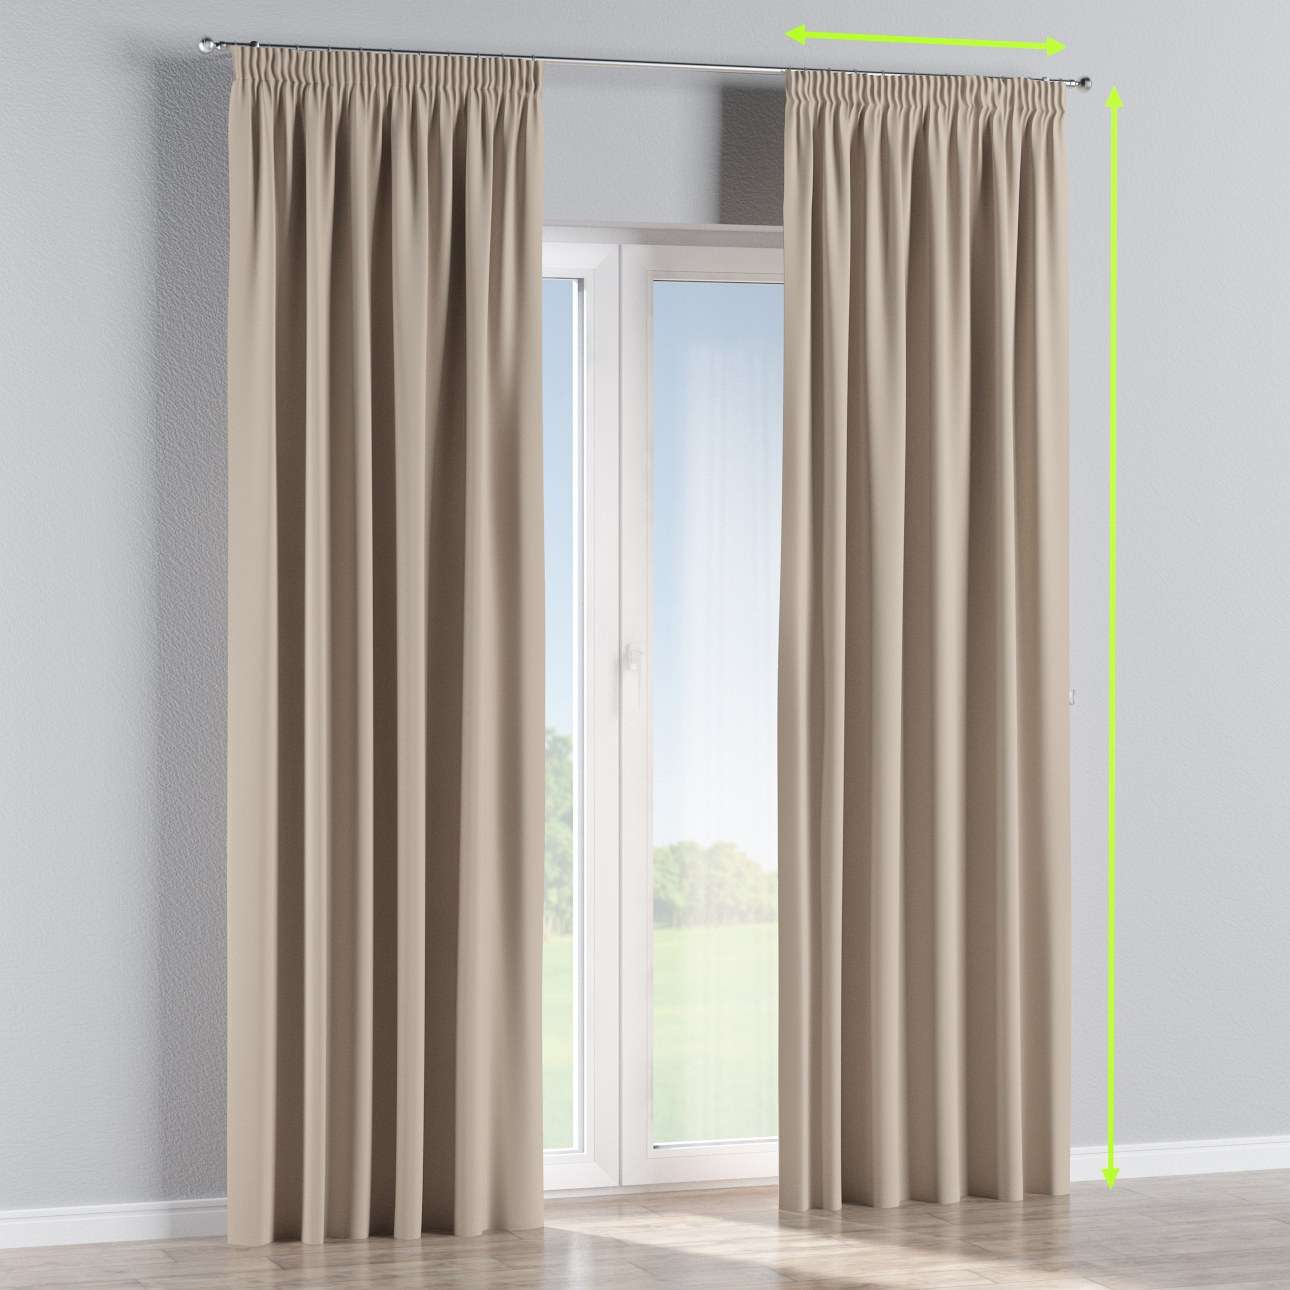 Pencil pleat curtains in collection Blackout, fabric: 269-00